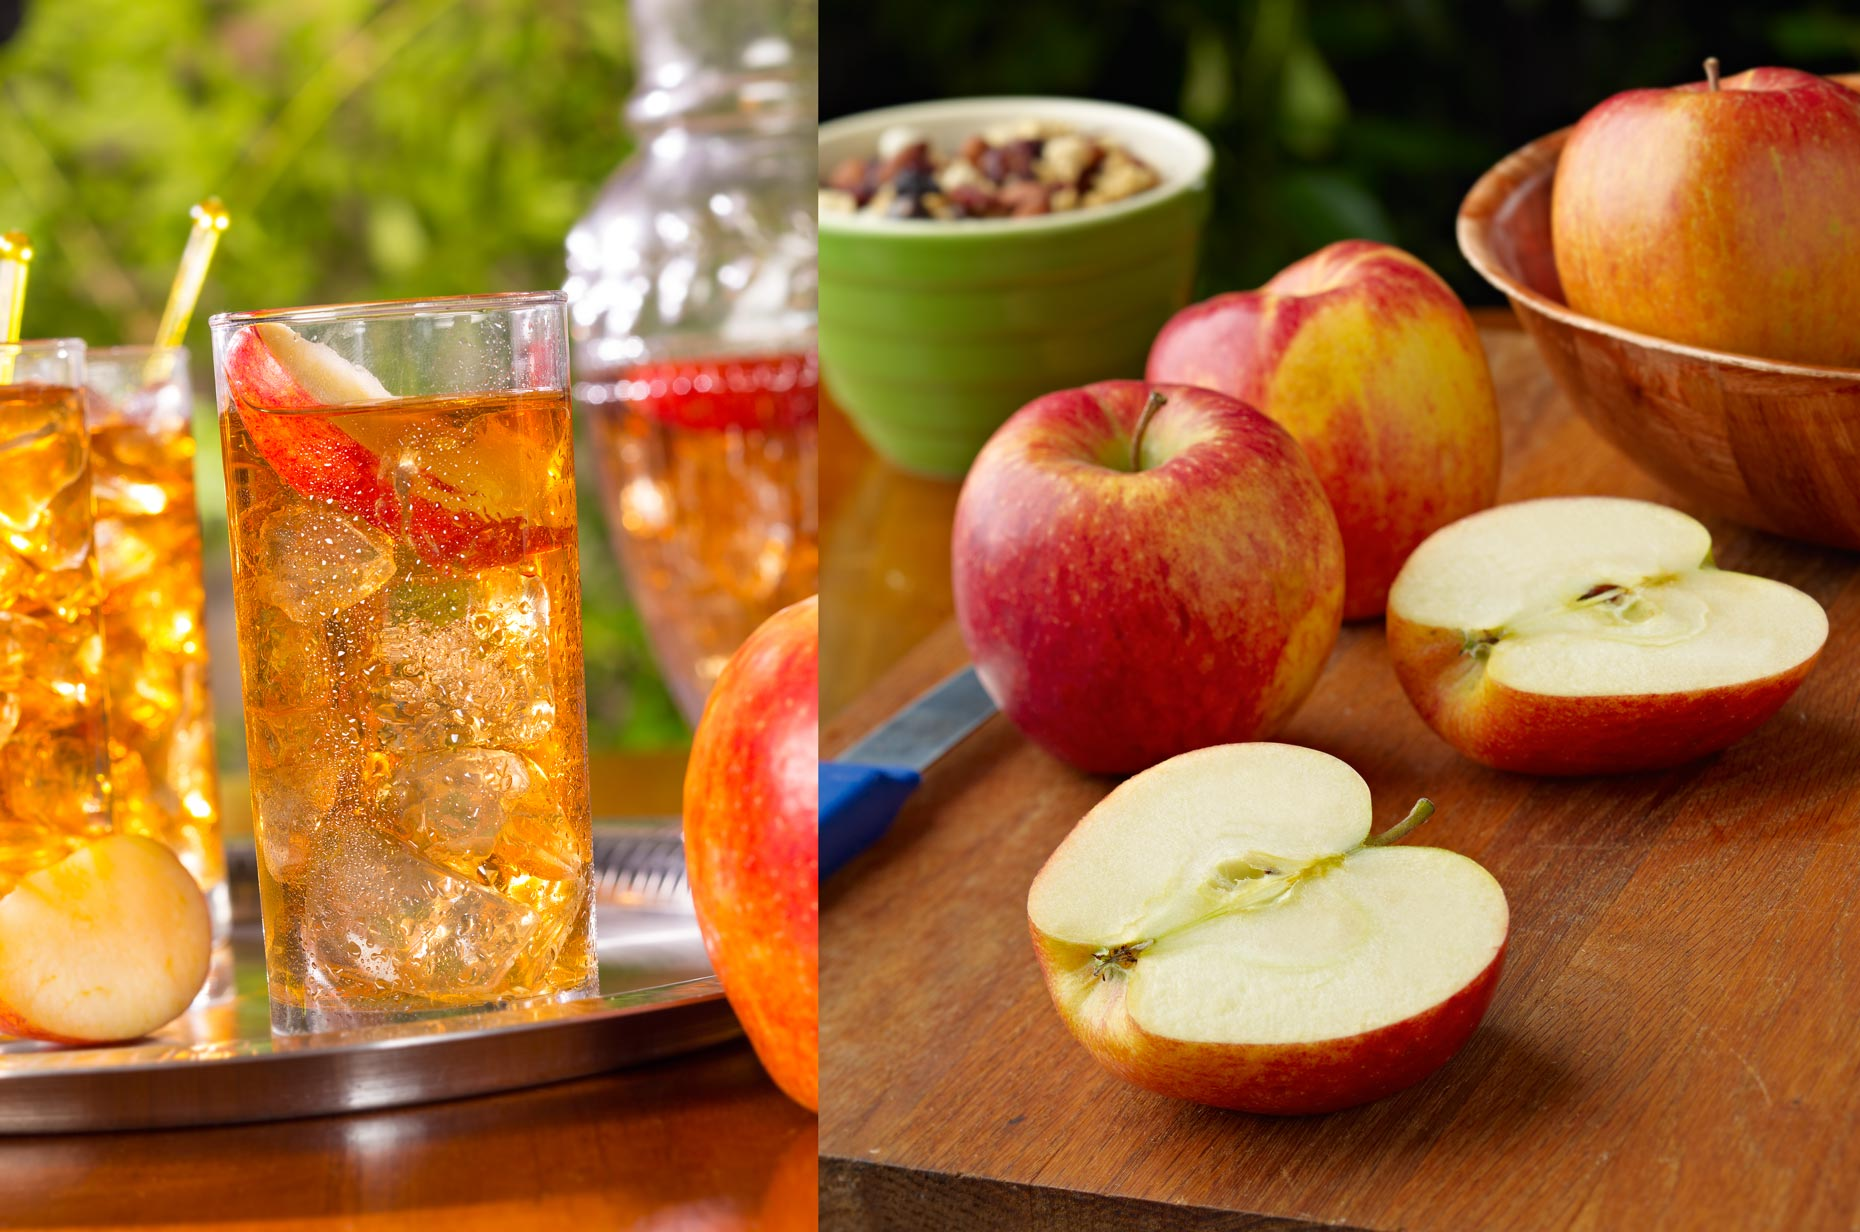 Beverage & Food Photography | Apple Juice Drink & Sliced Apples